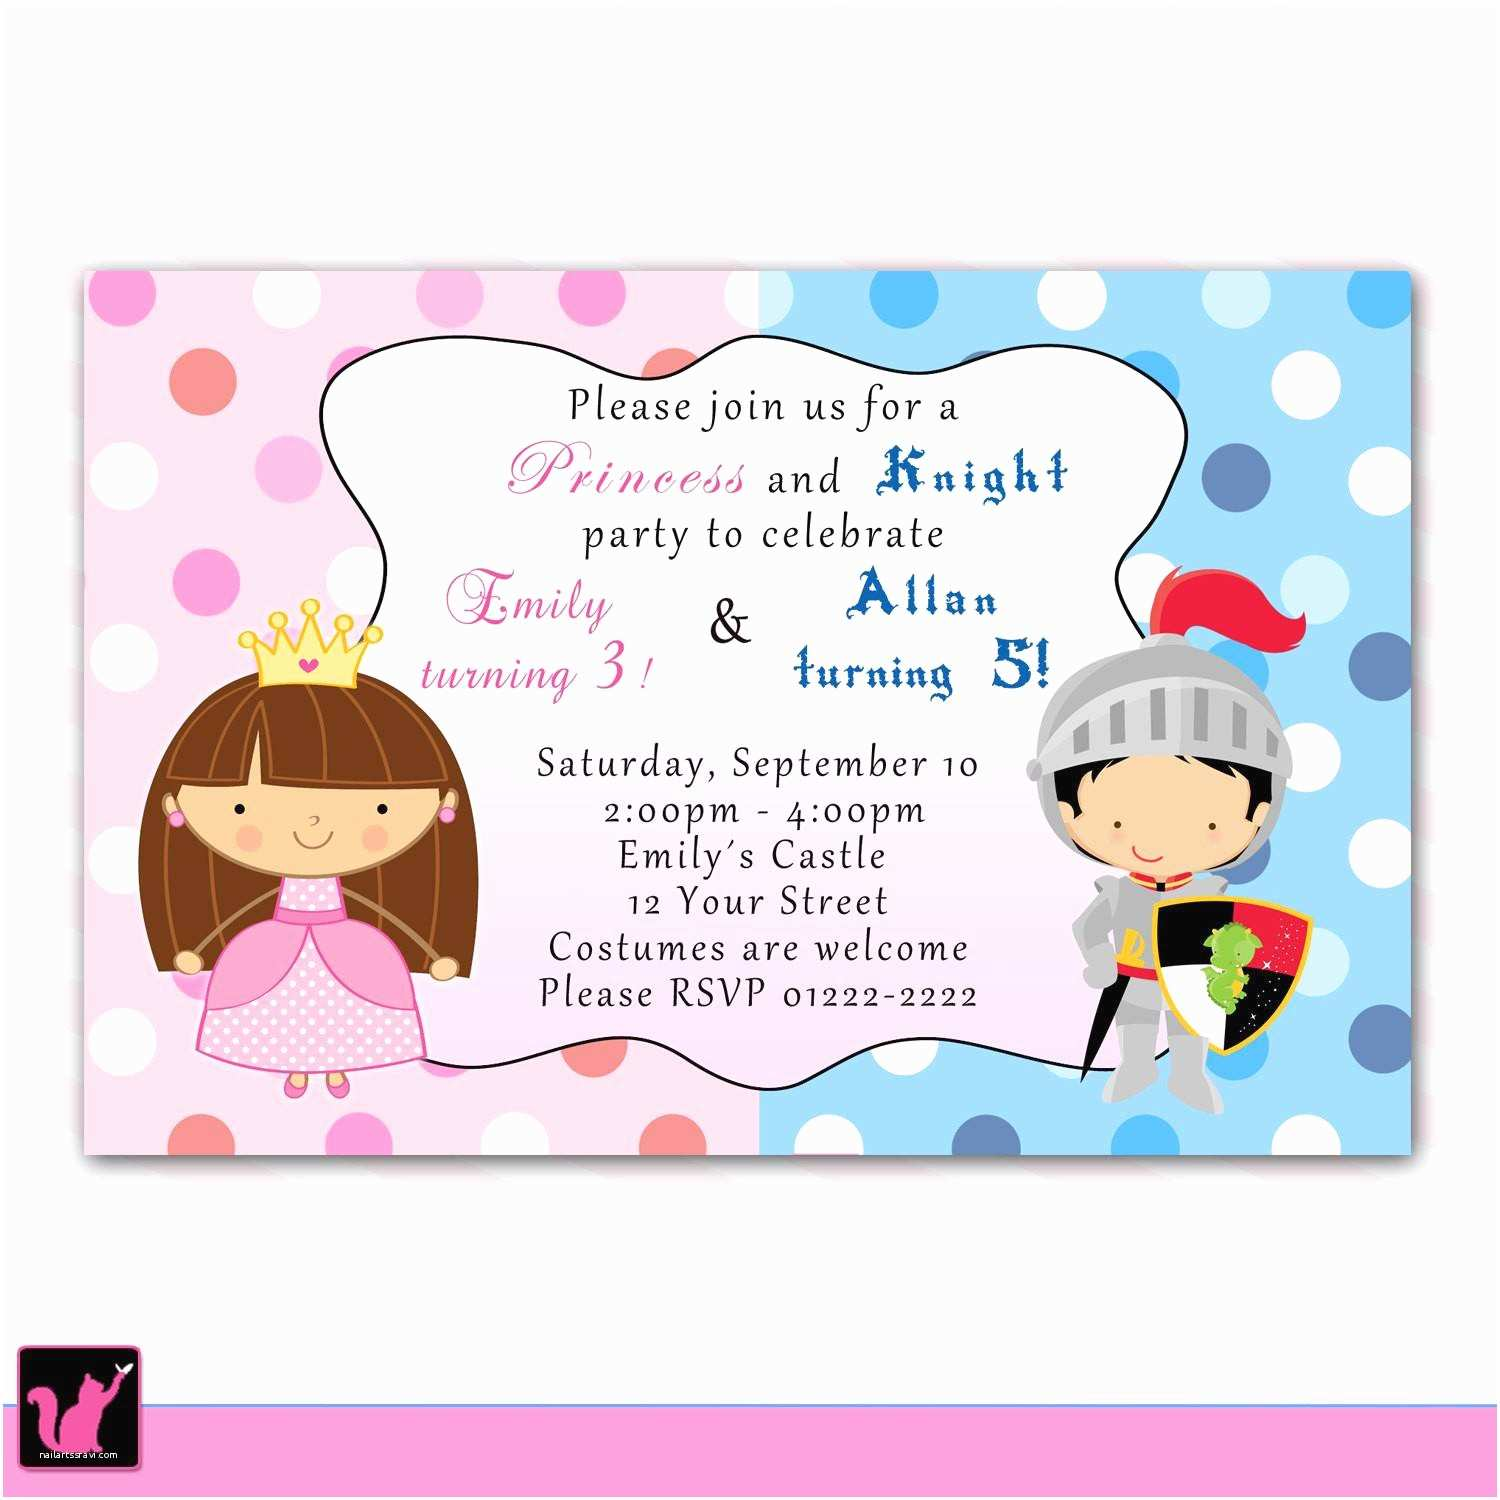 Personalized Party Invitations Personalized Party Invites